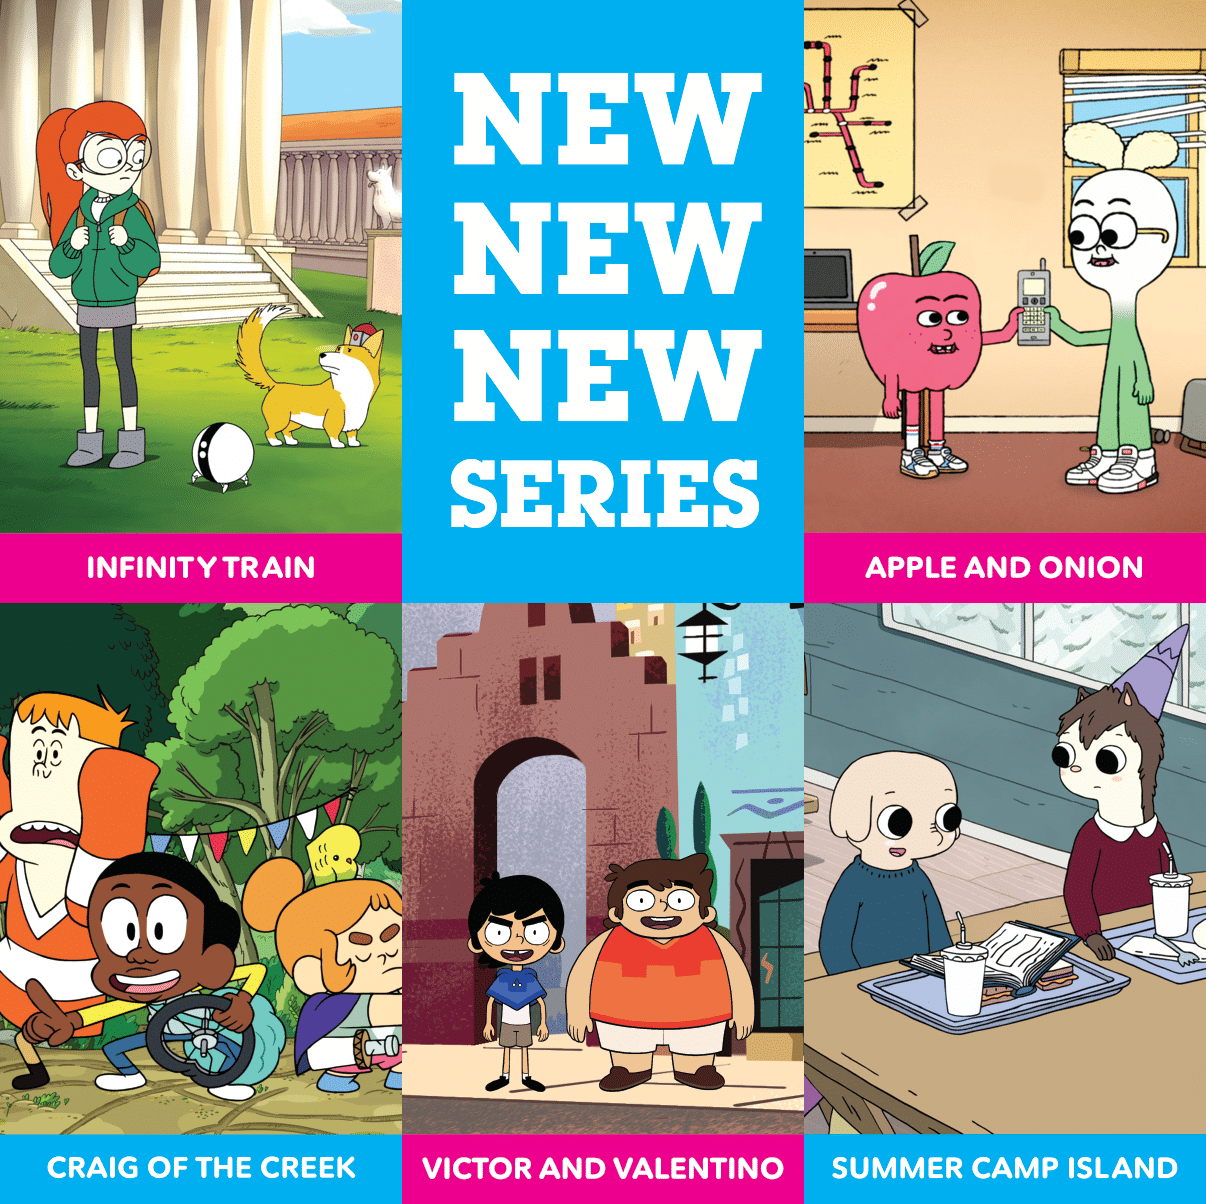 Cartoon Network USA 2018-2019 Upfront: Cartoon Network's Largest Programming Slate Ever: New Shows, New Episodes and New Digital Content